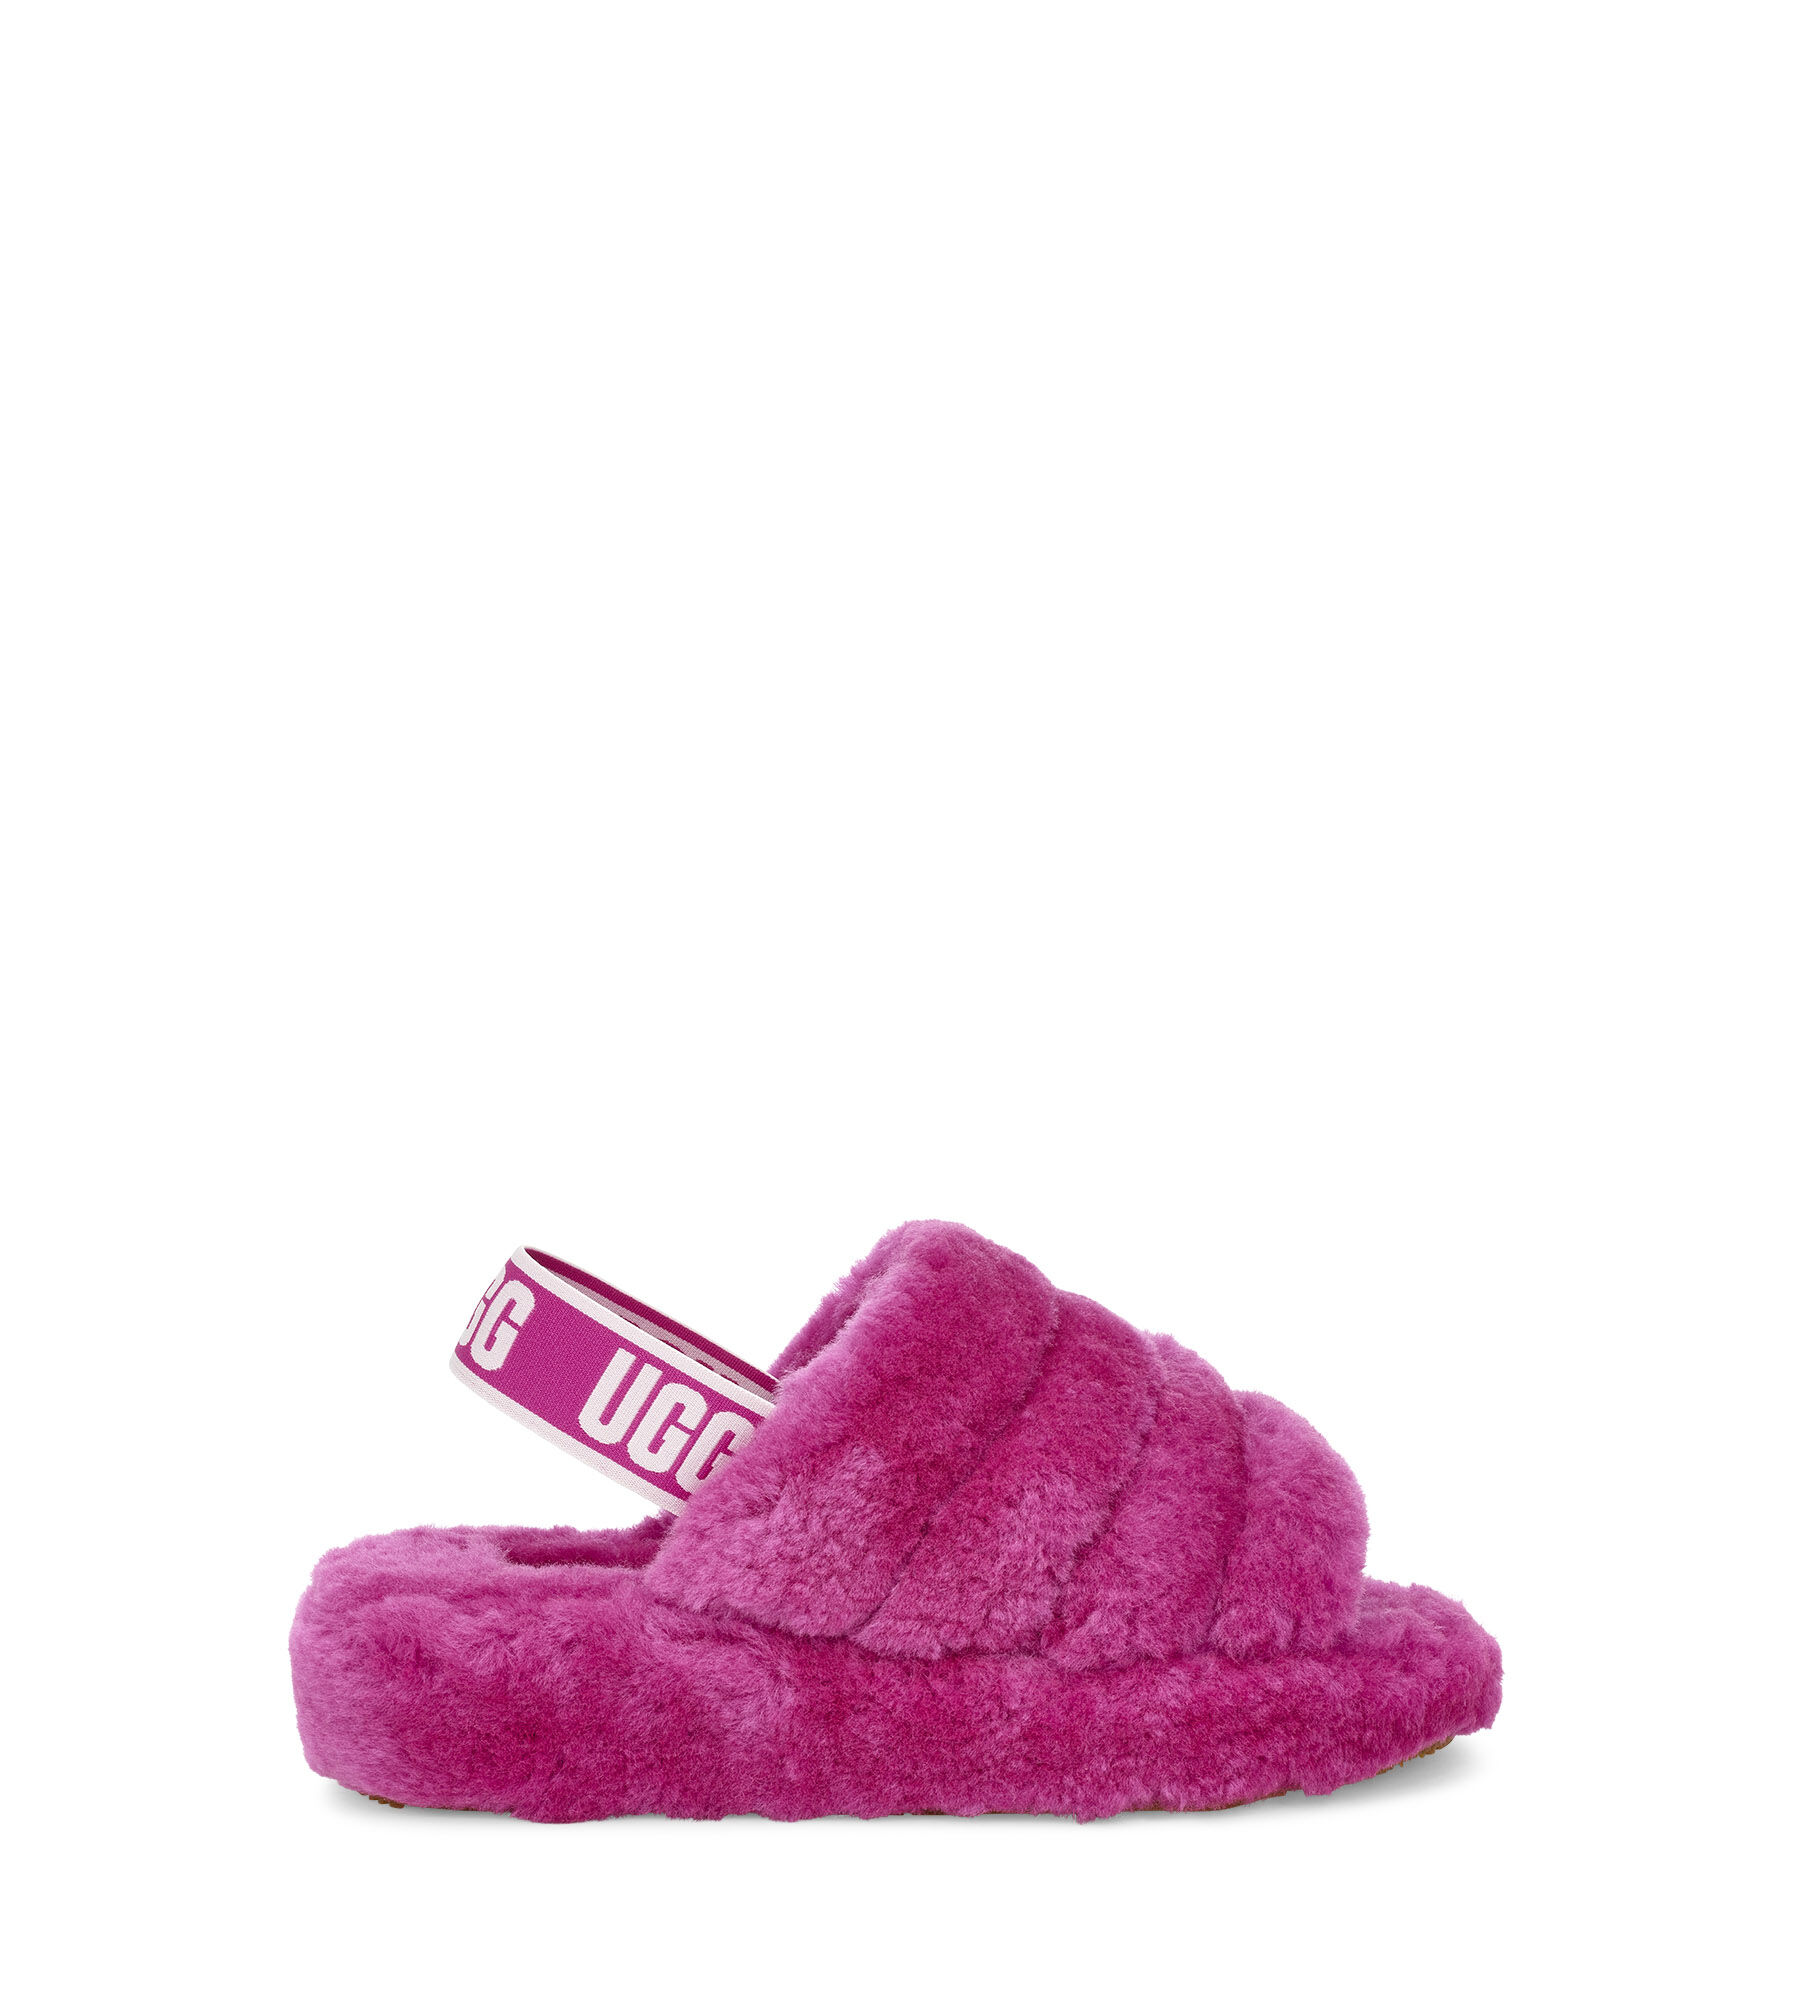 Go Fluffy | Sandals, Slippers & Slides | UGG® UK.